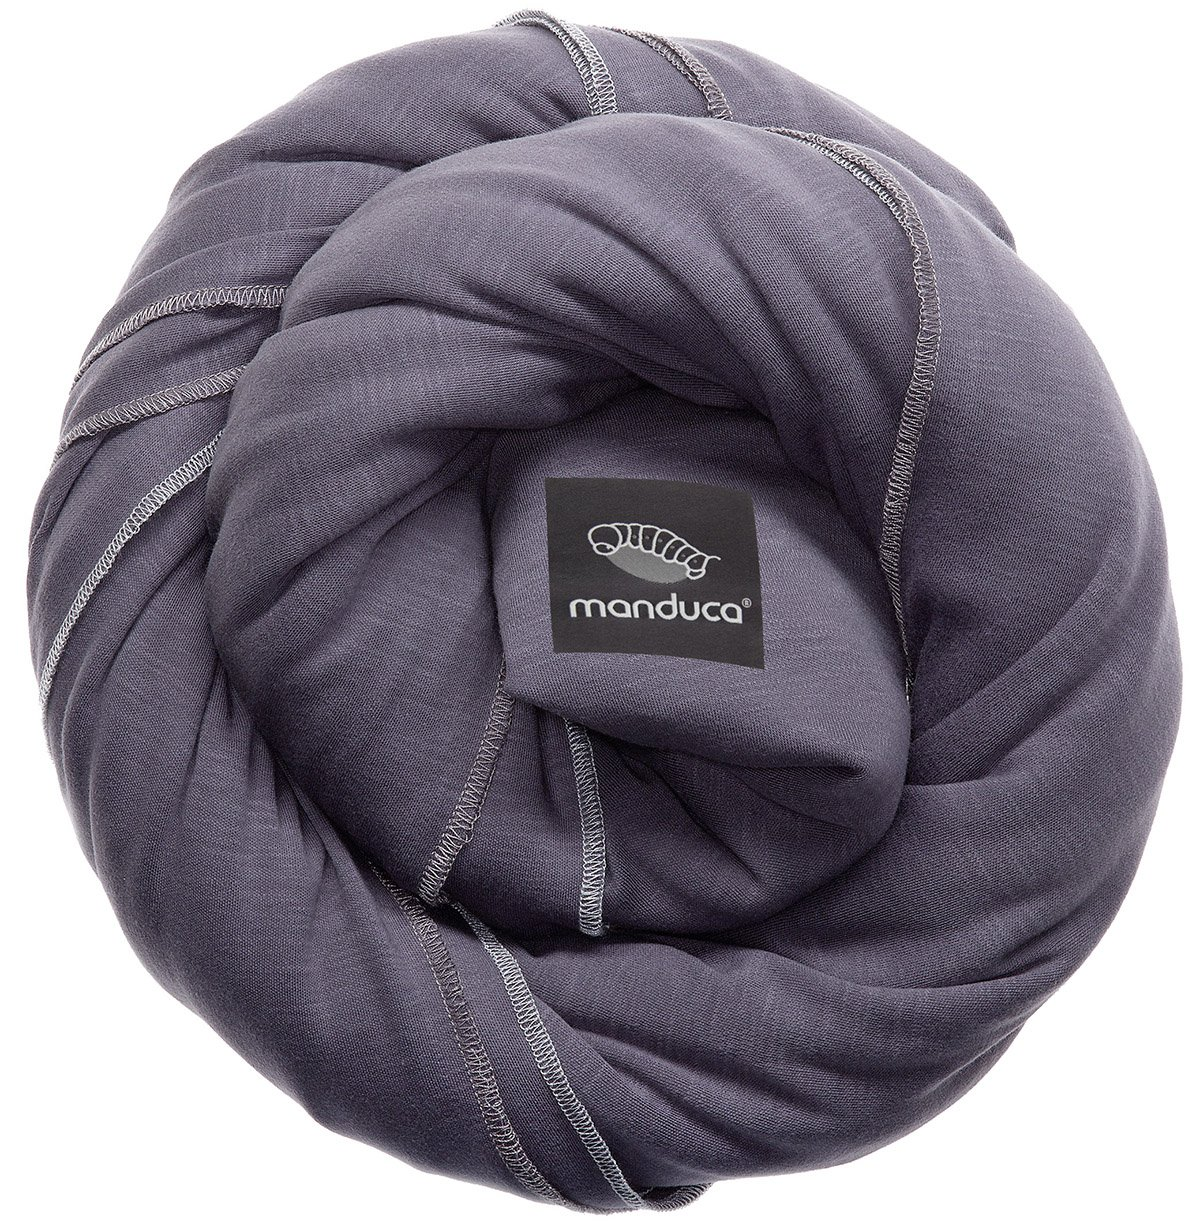 Manduca Sling (Slate) Manduca 100% organic cotton, soft, cosy & light knit fabric Elastic and yet stable thanks to bi-elastic knit fabric, without elastine Low in weight 1